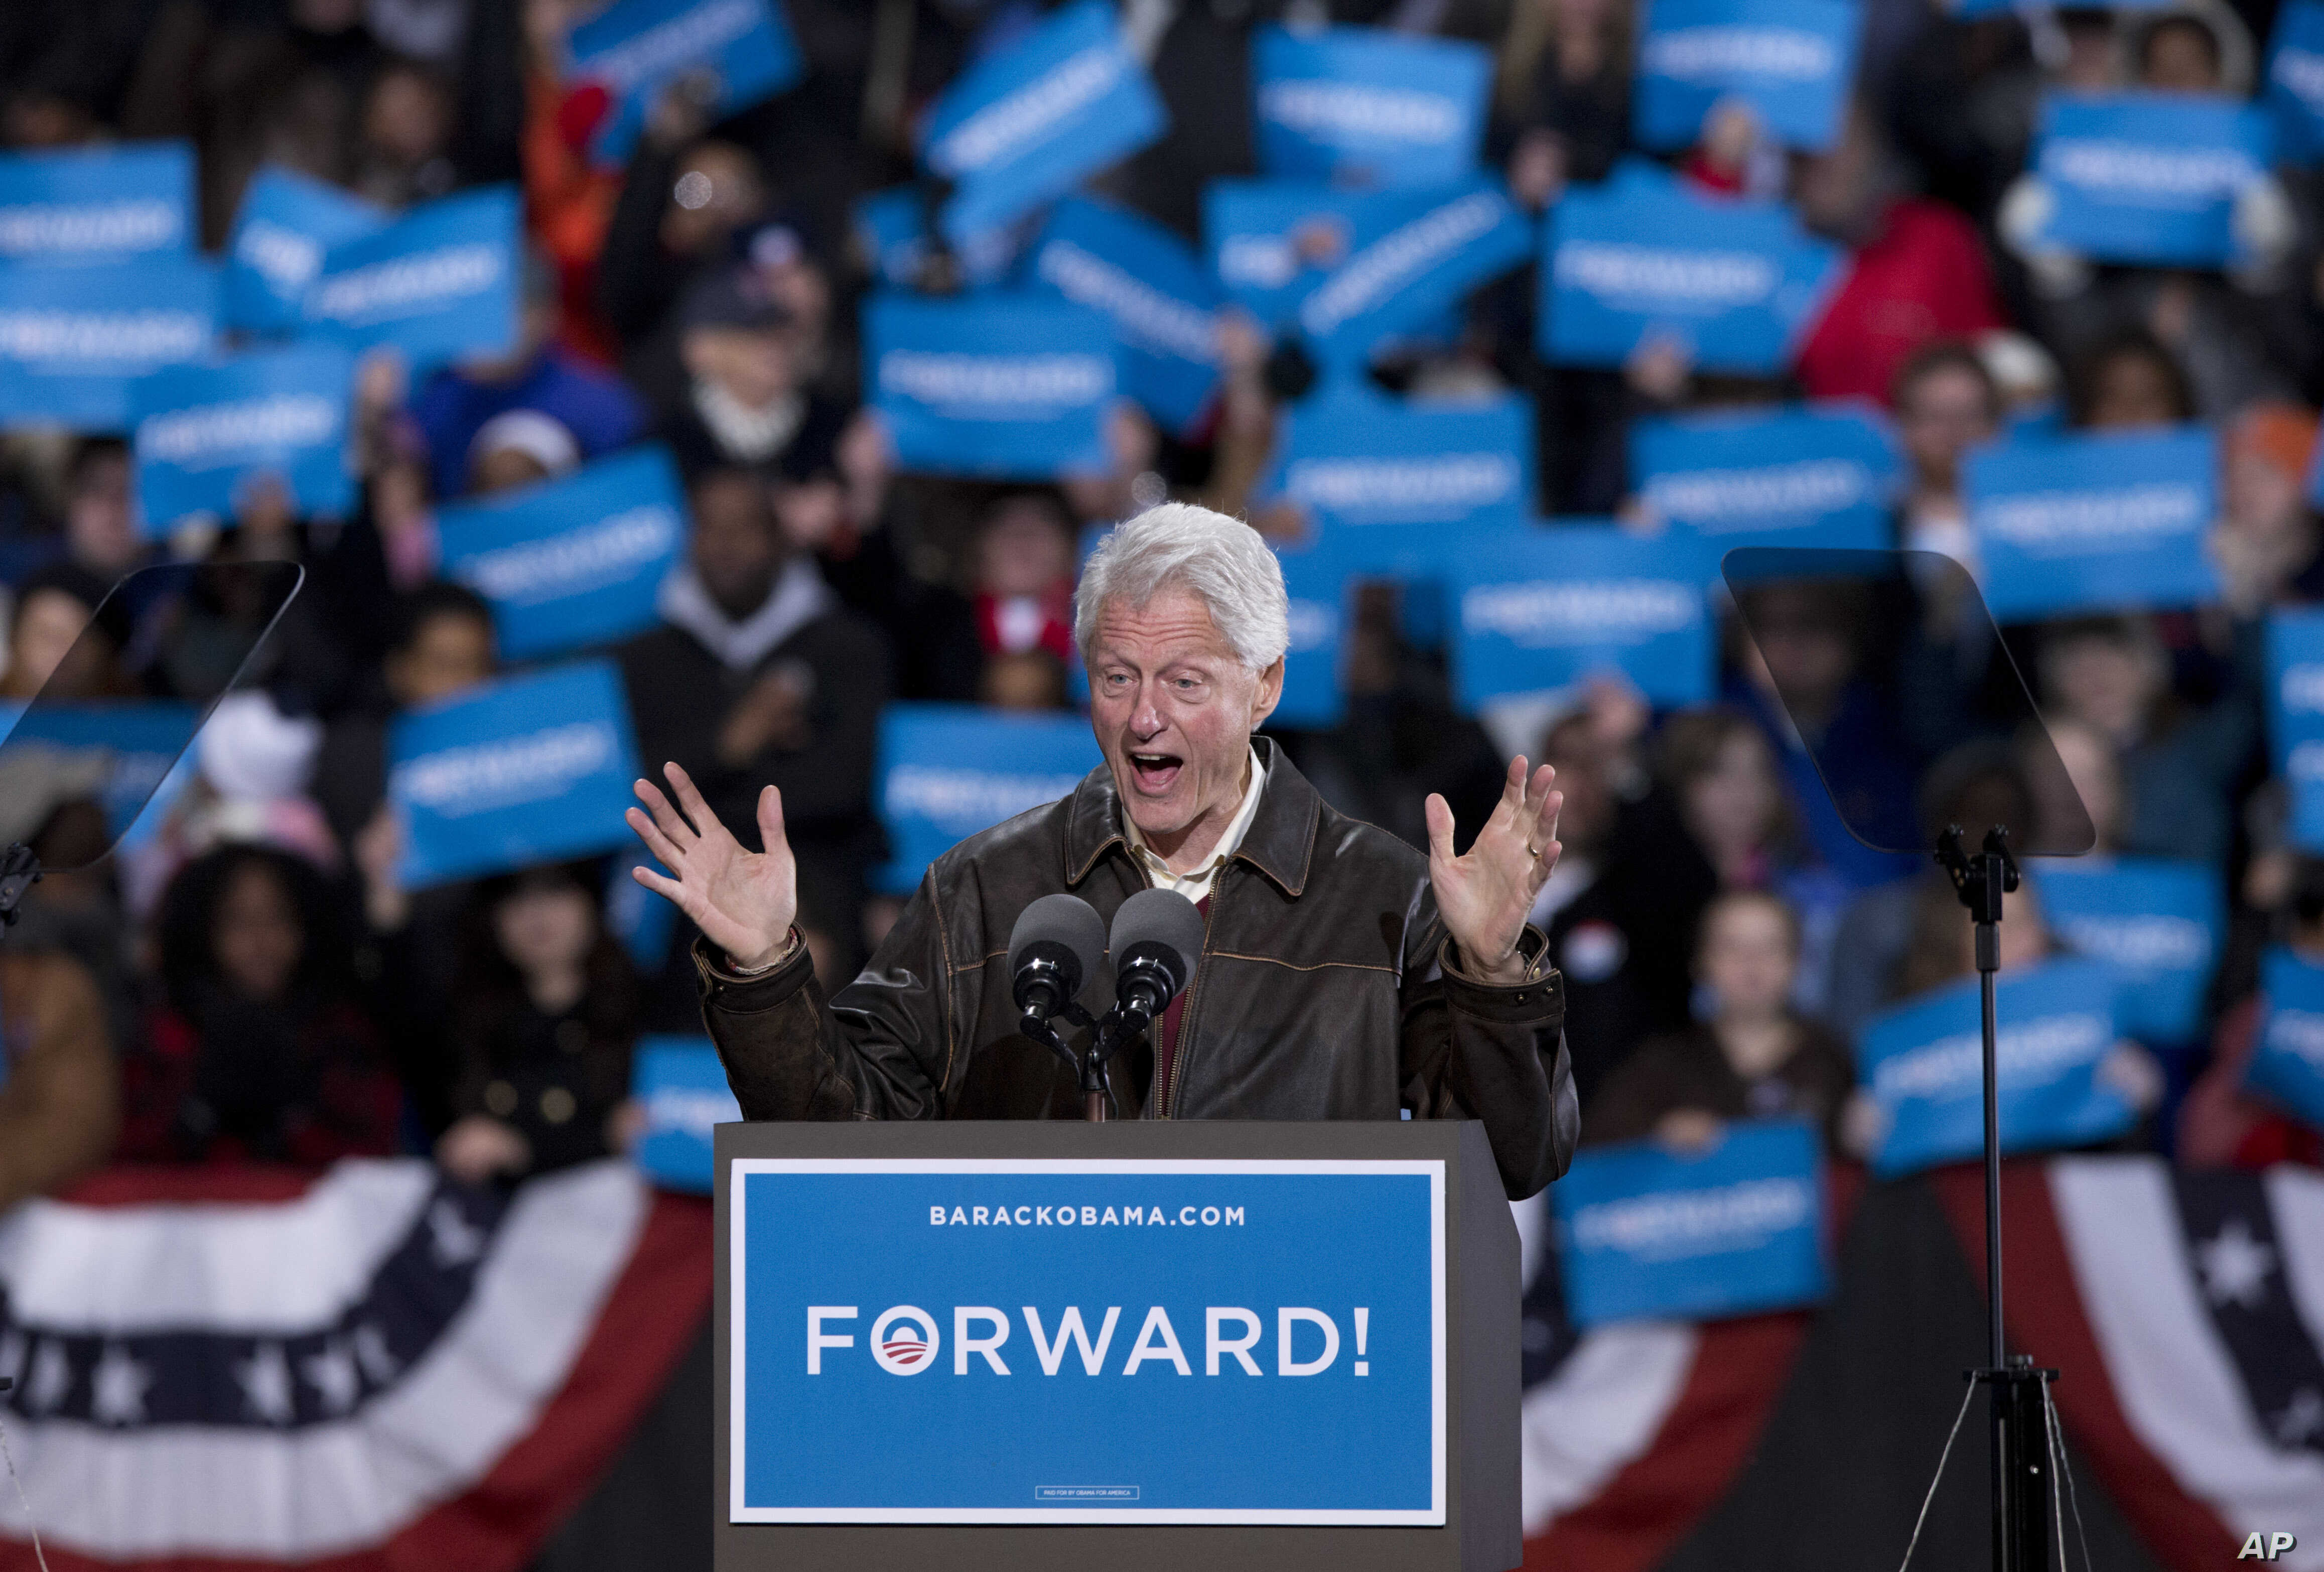 In the final hours of a four-state campaign day, President Barack Obama is introduced by former President Bill Clinton at a rally at Jiffy Lube Live arena, November 3, 2012, in Bristow, Virginia.